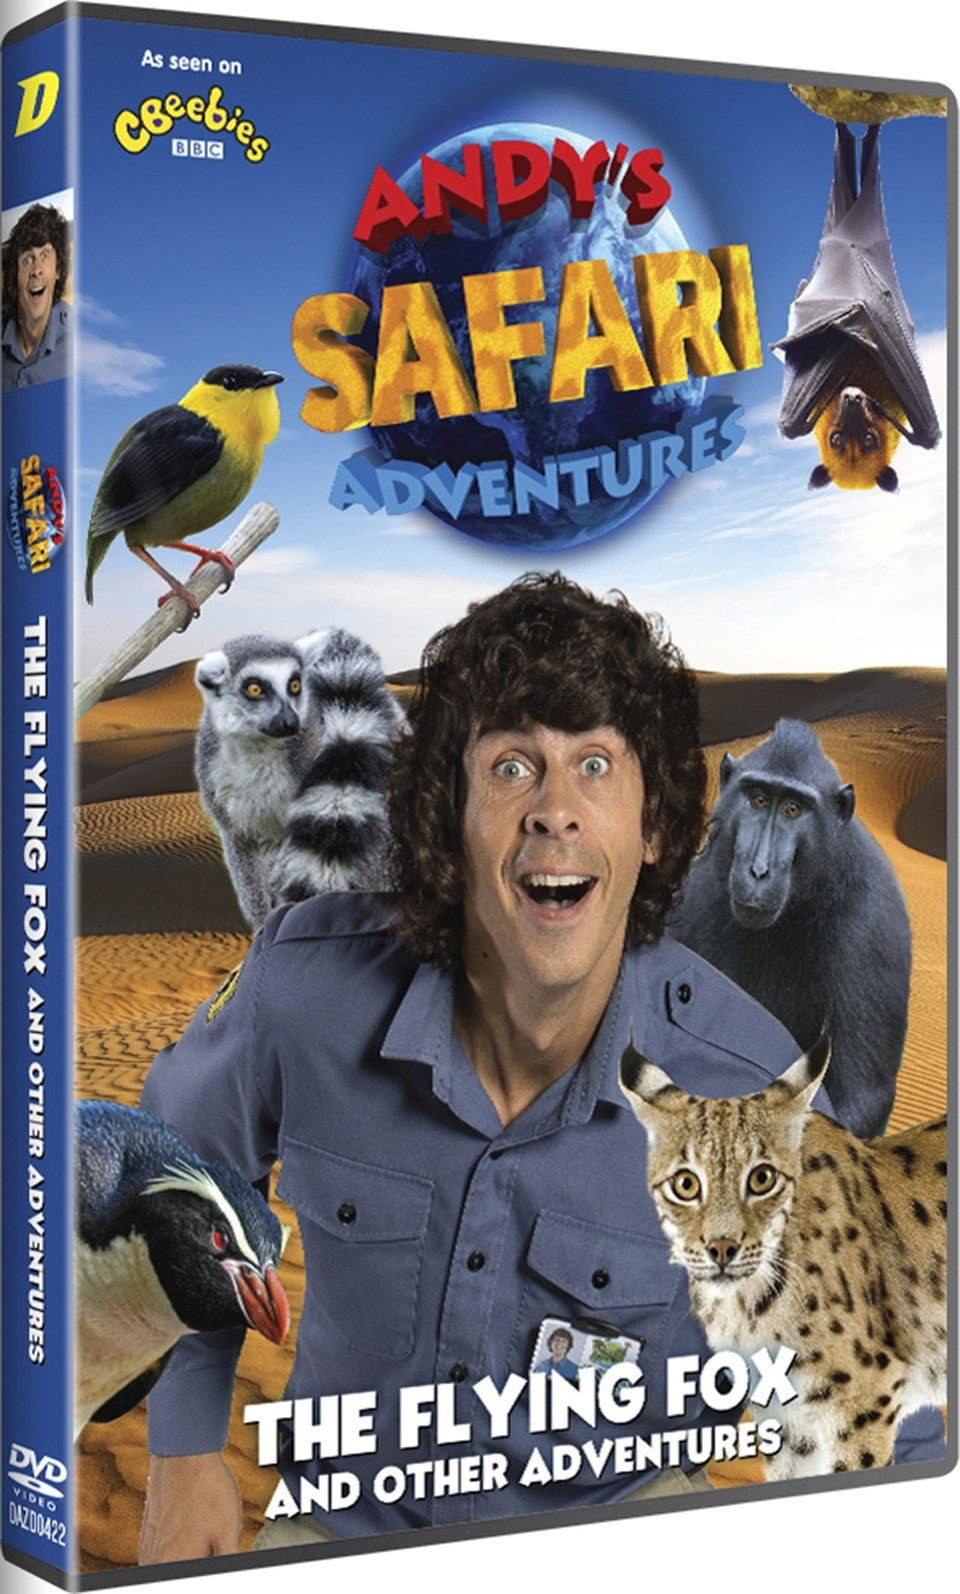 Andy's Safari Adventures: The Flying Fox and Other Adventures - 2